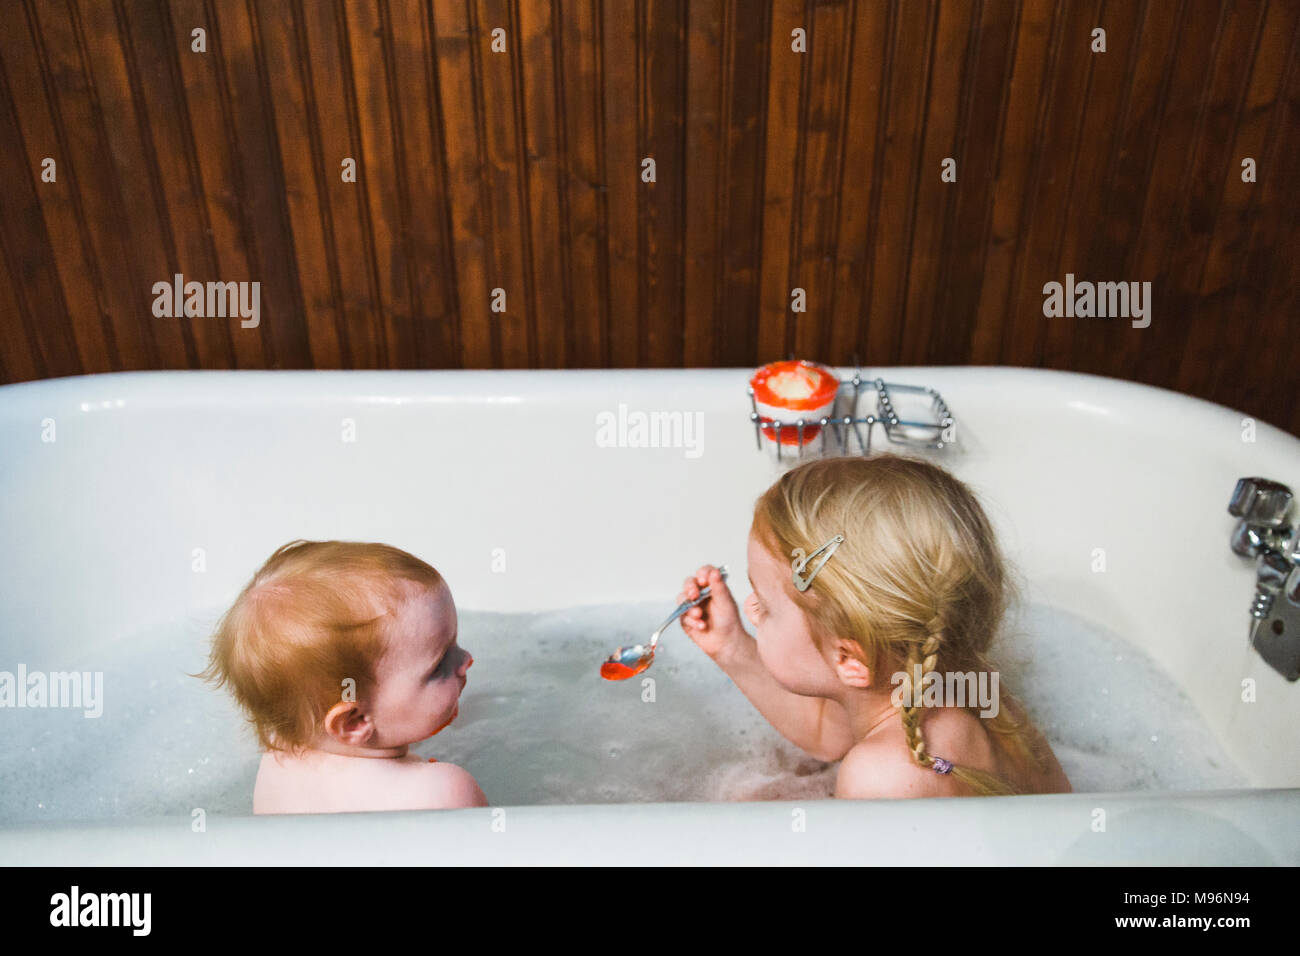 Child getting fed in the bath by another child - Stock Image